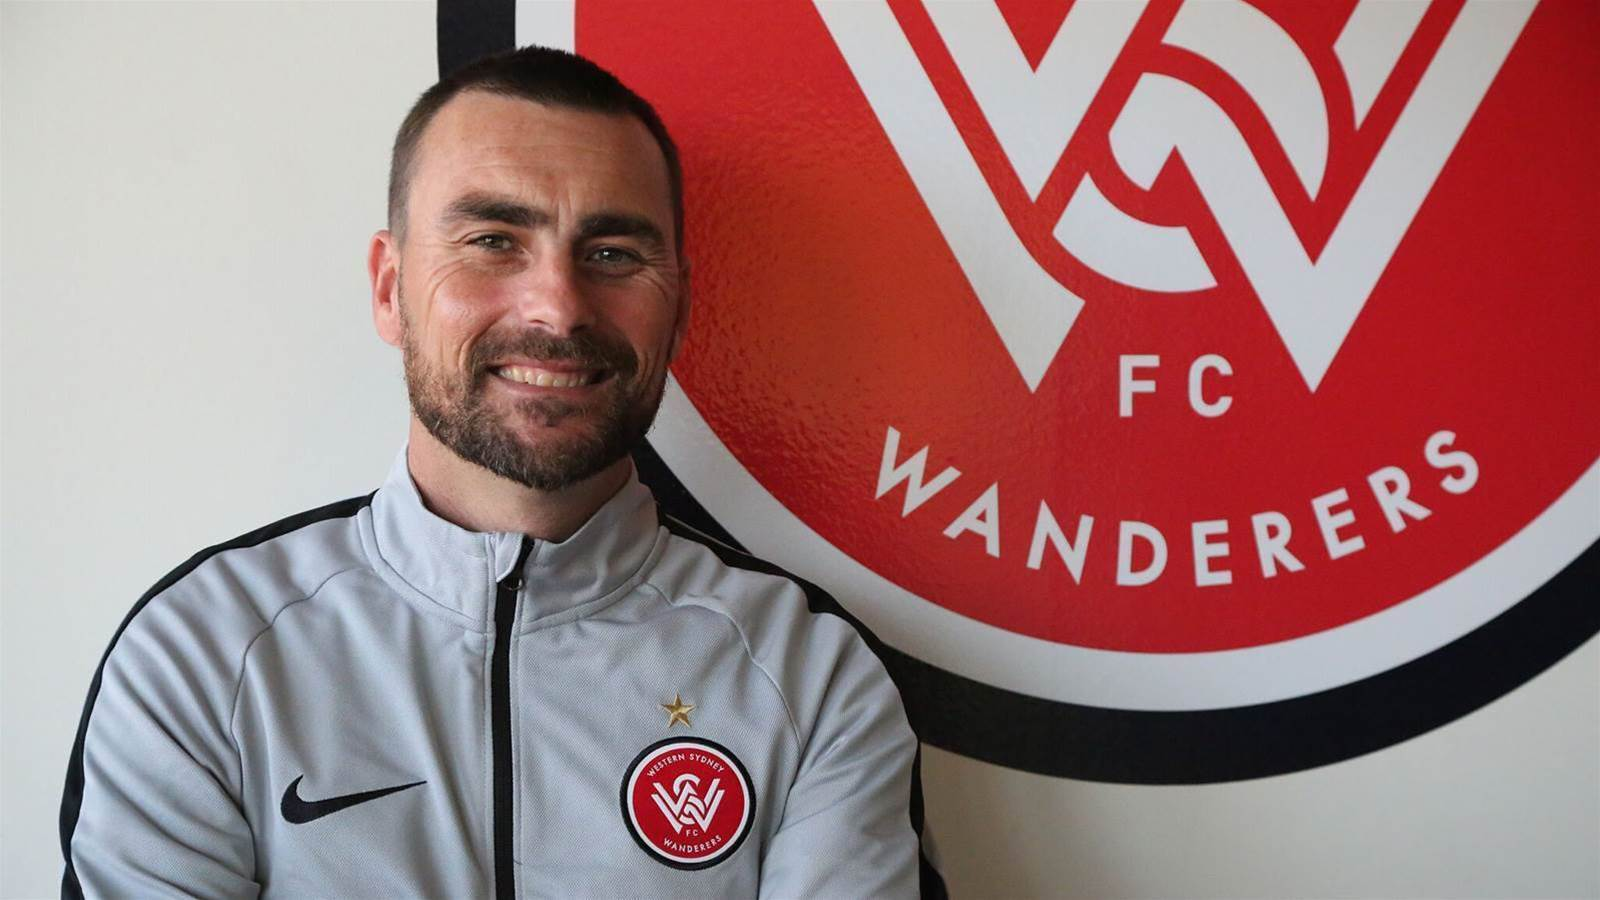 Western Sydney Wanderers appoint their new W-League coach